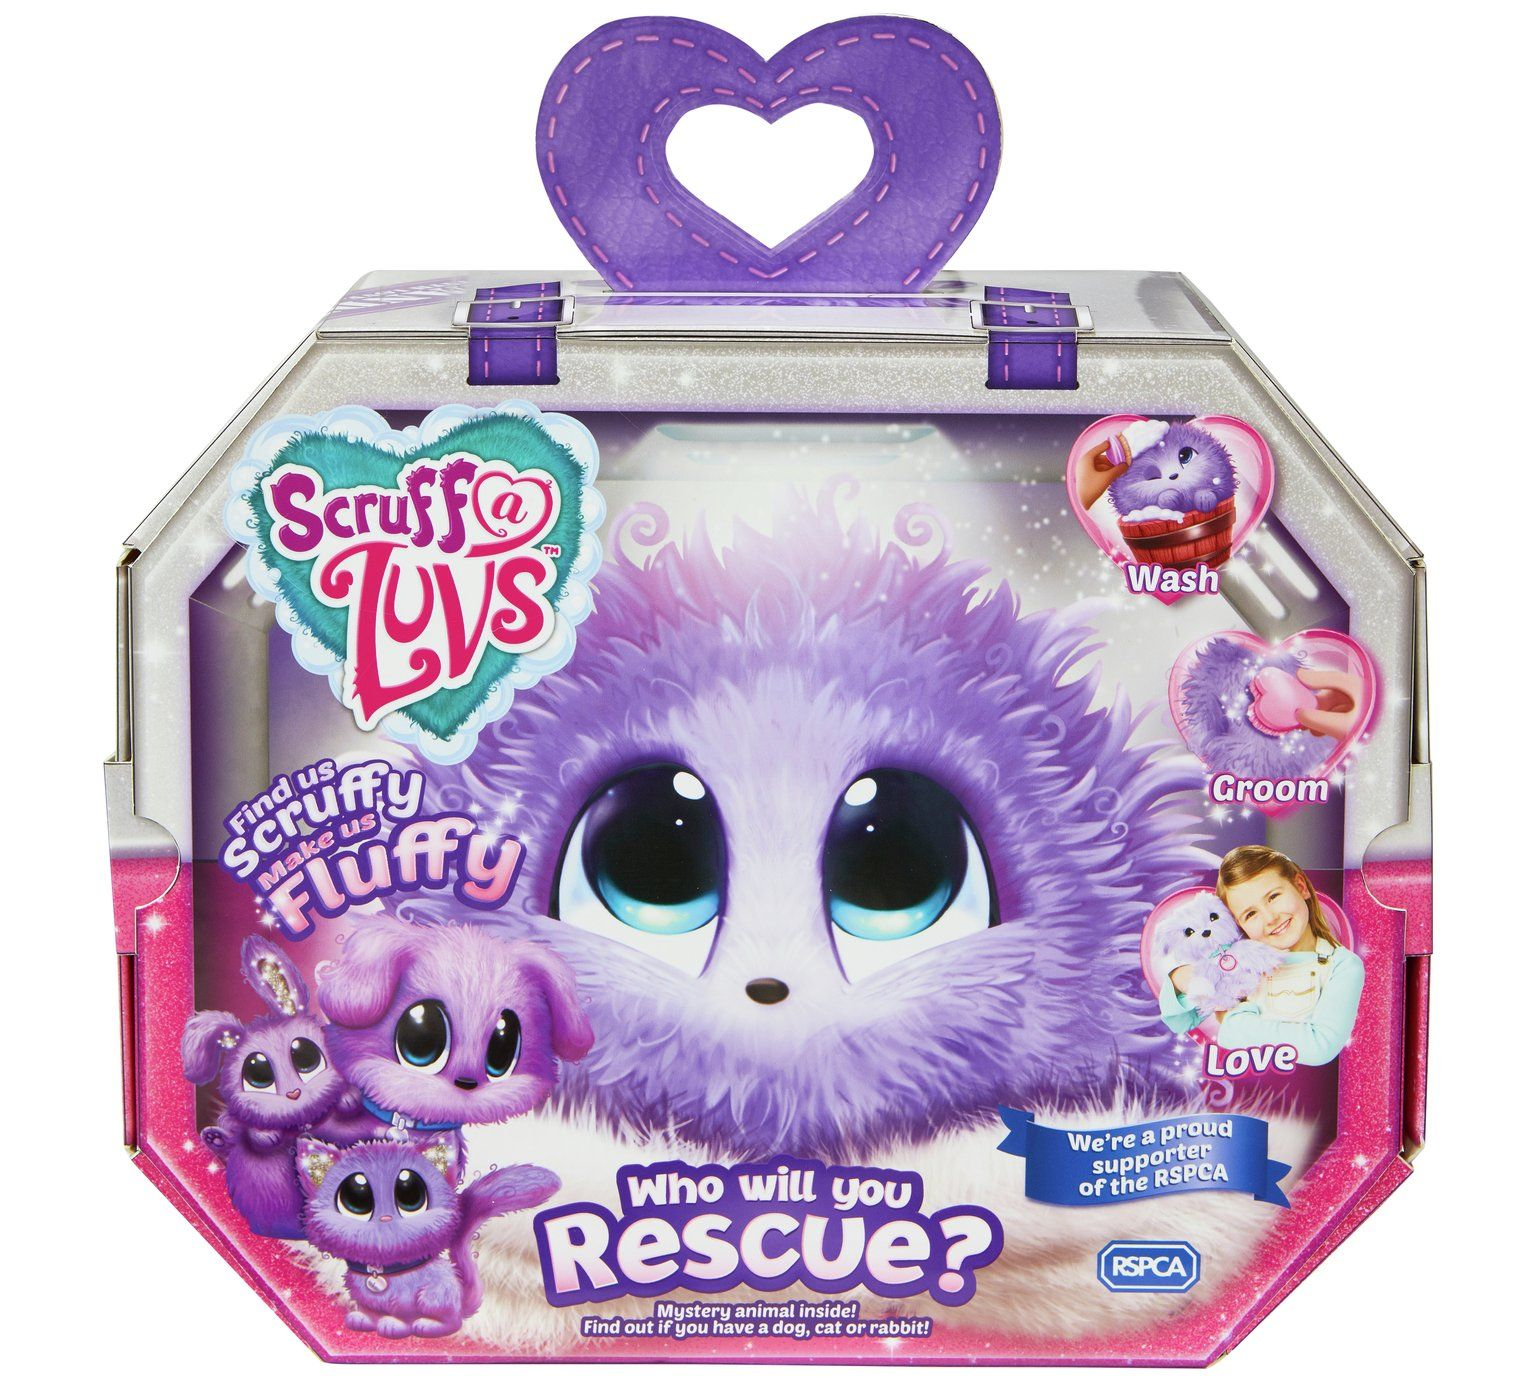 Buy ScruffaLuvs Assortment Purple Teddy bears and